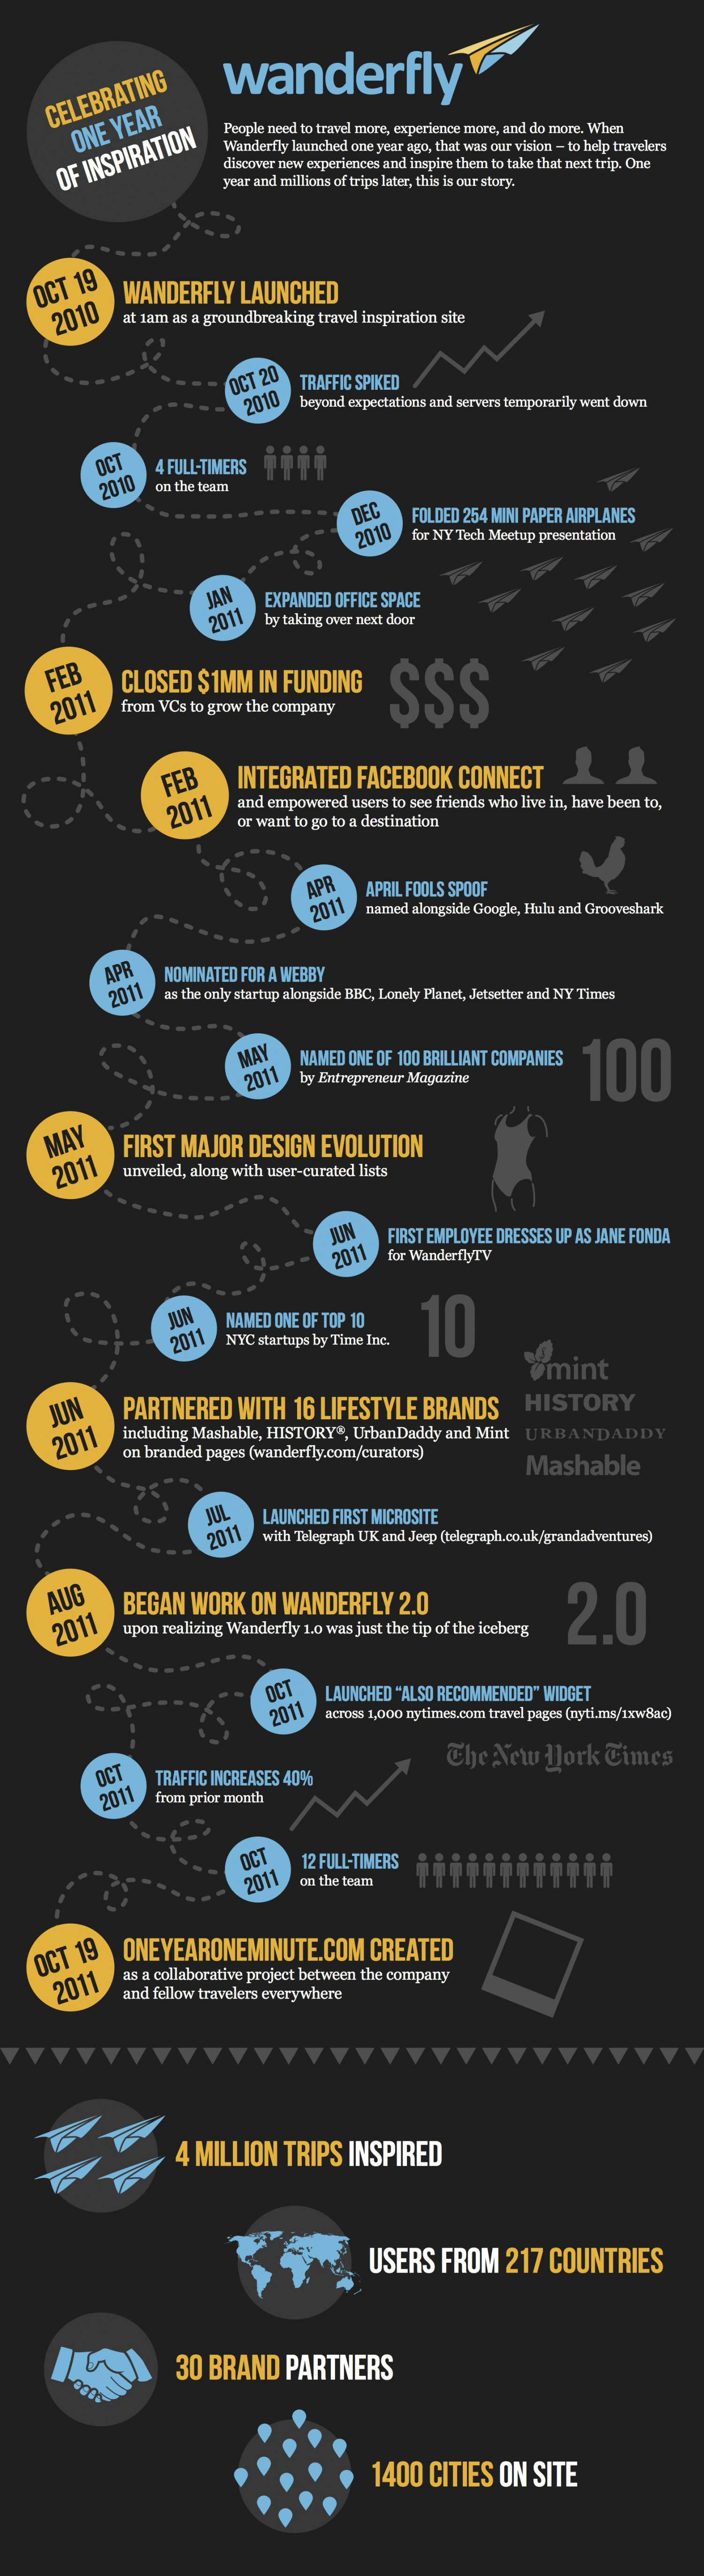 Wanderfly: Celebrating One Year Of Travel Inspiration Infographic